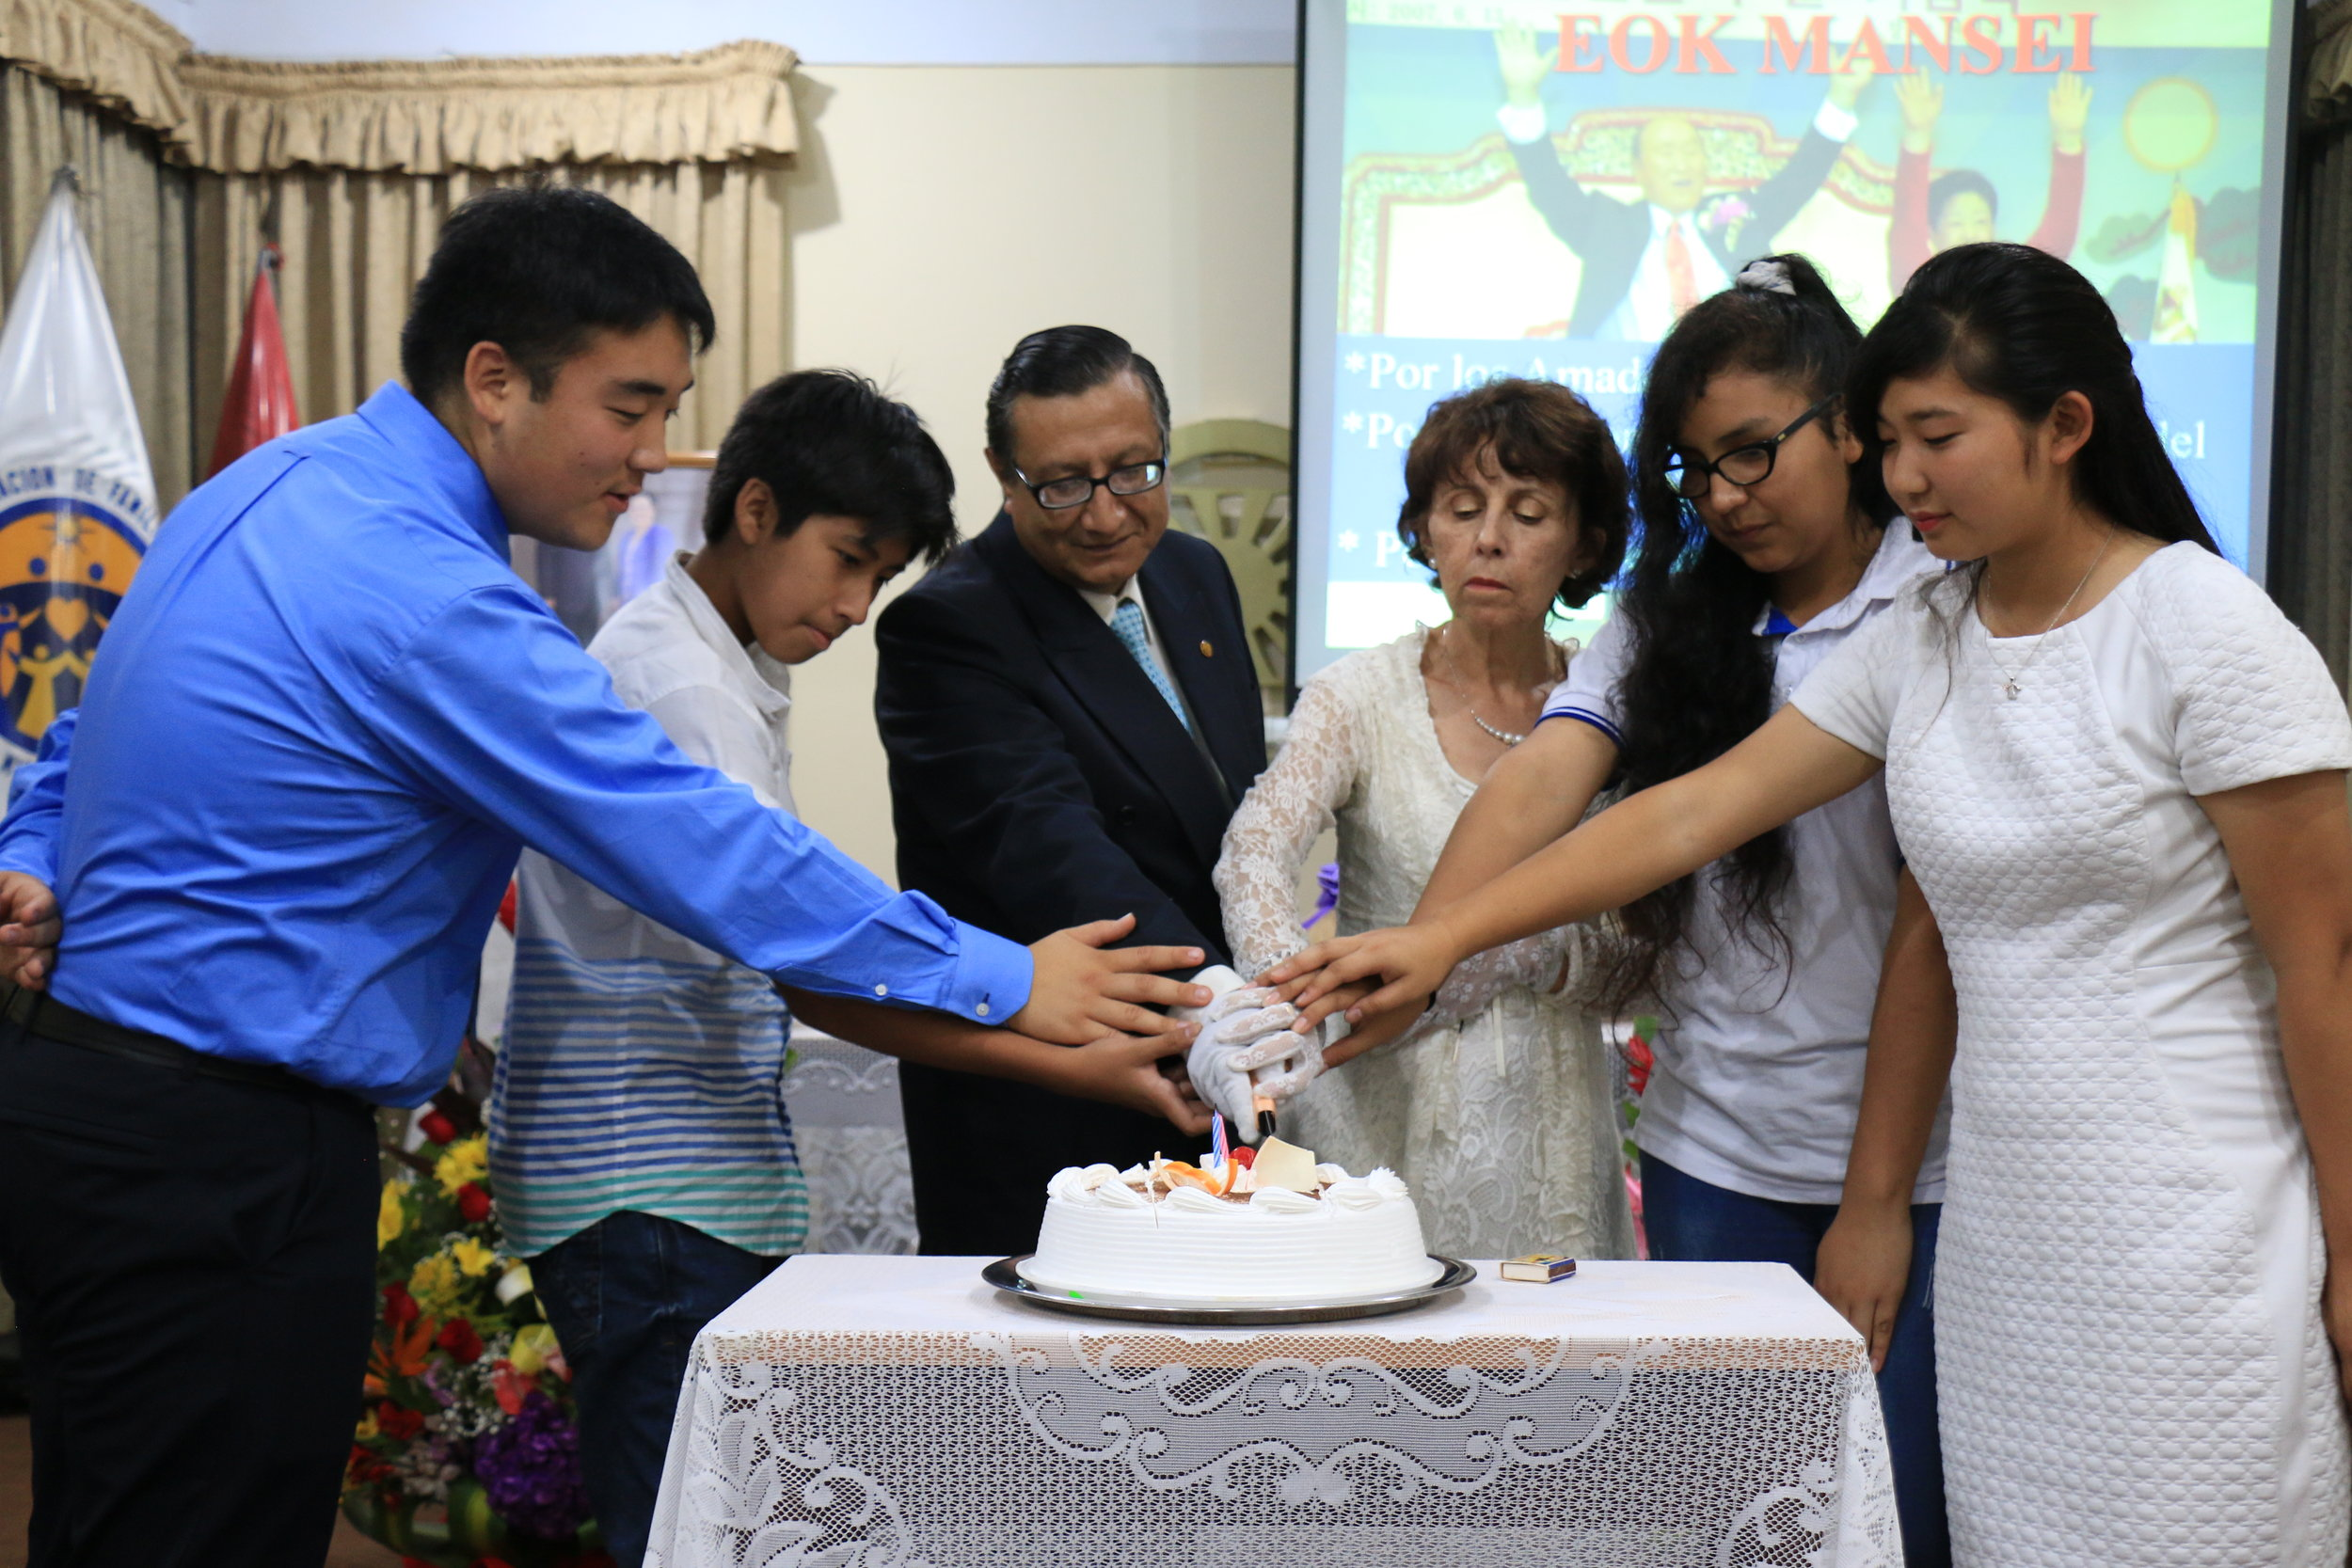 Cutting the Celebration Cake with the Leaders